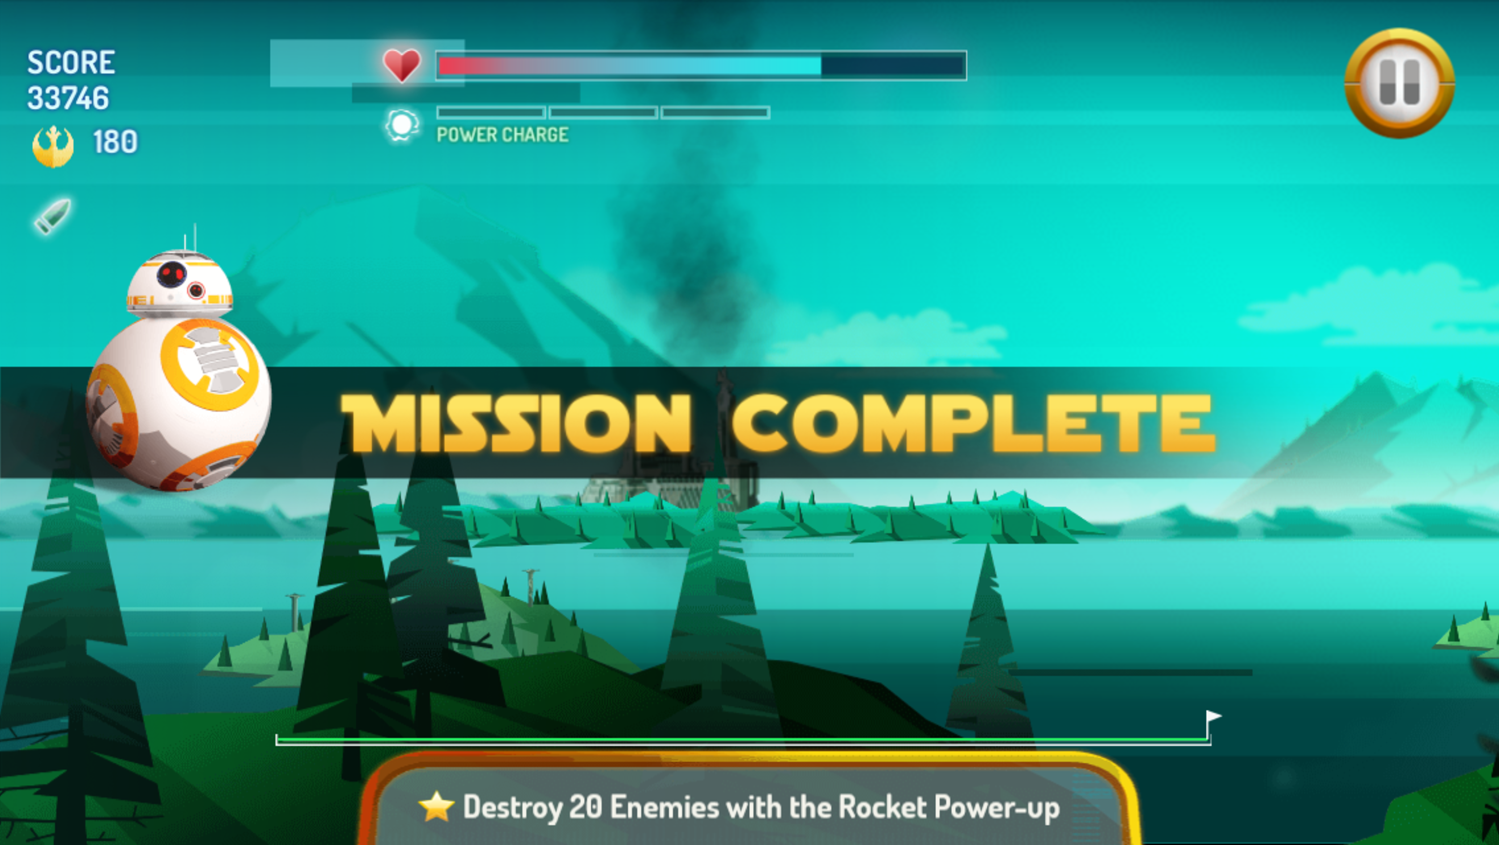 Star Wars X Wing Fighter Mission Complete Screenshot.